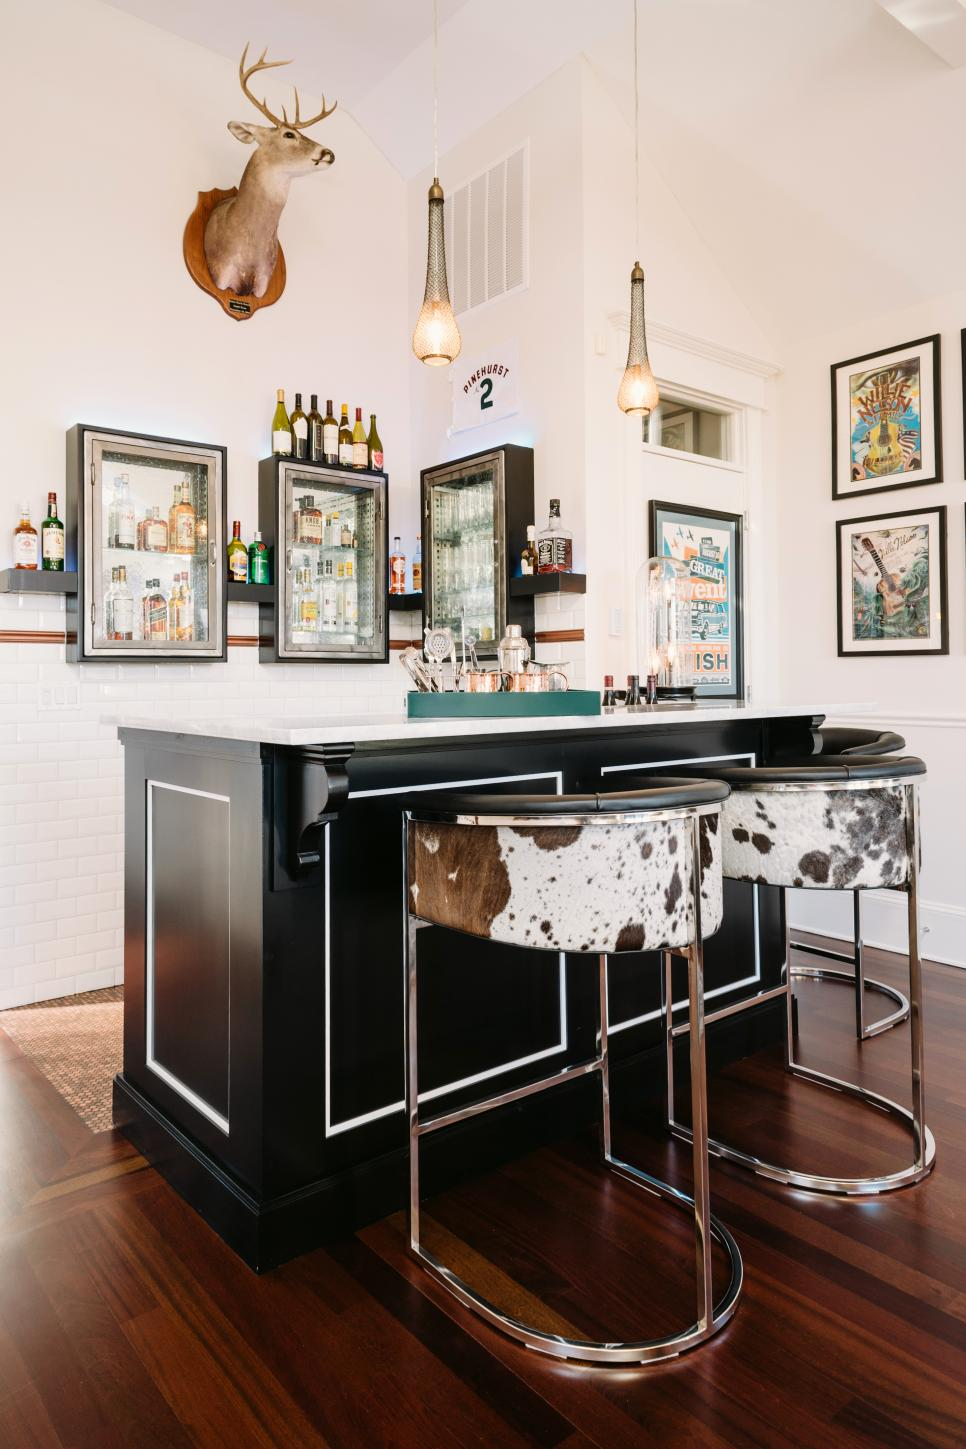 Corner Bar With Cabinets, Cow Hide Barstools & Mounted Deer Head